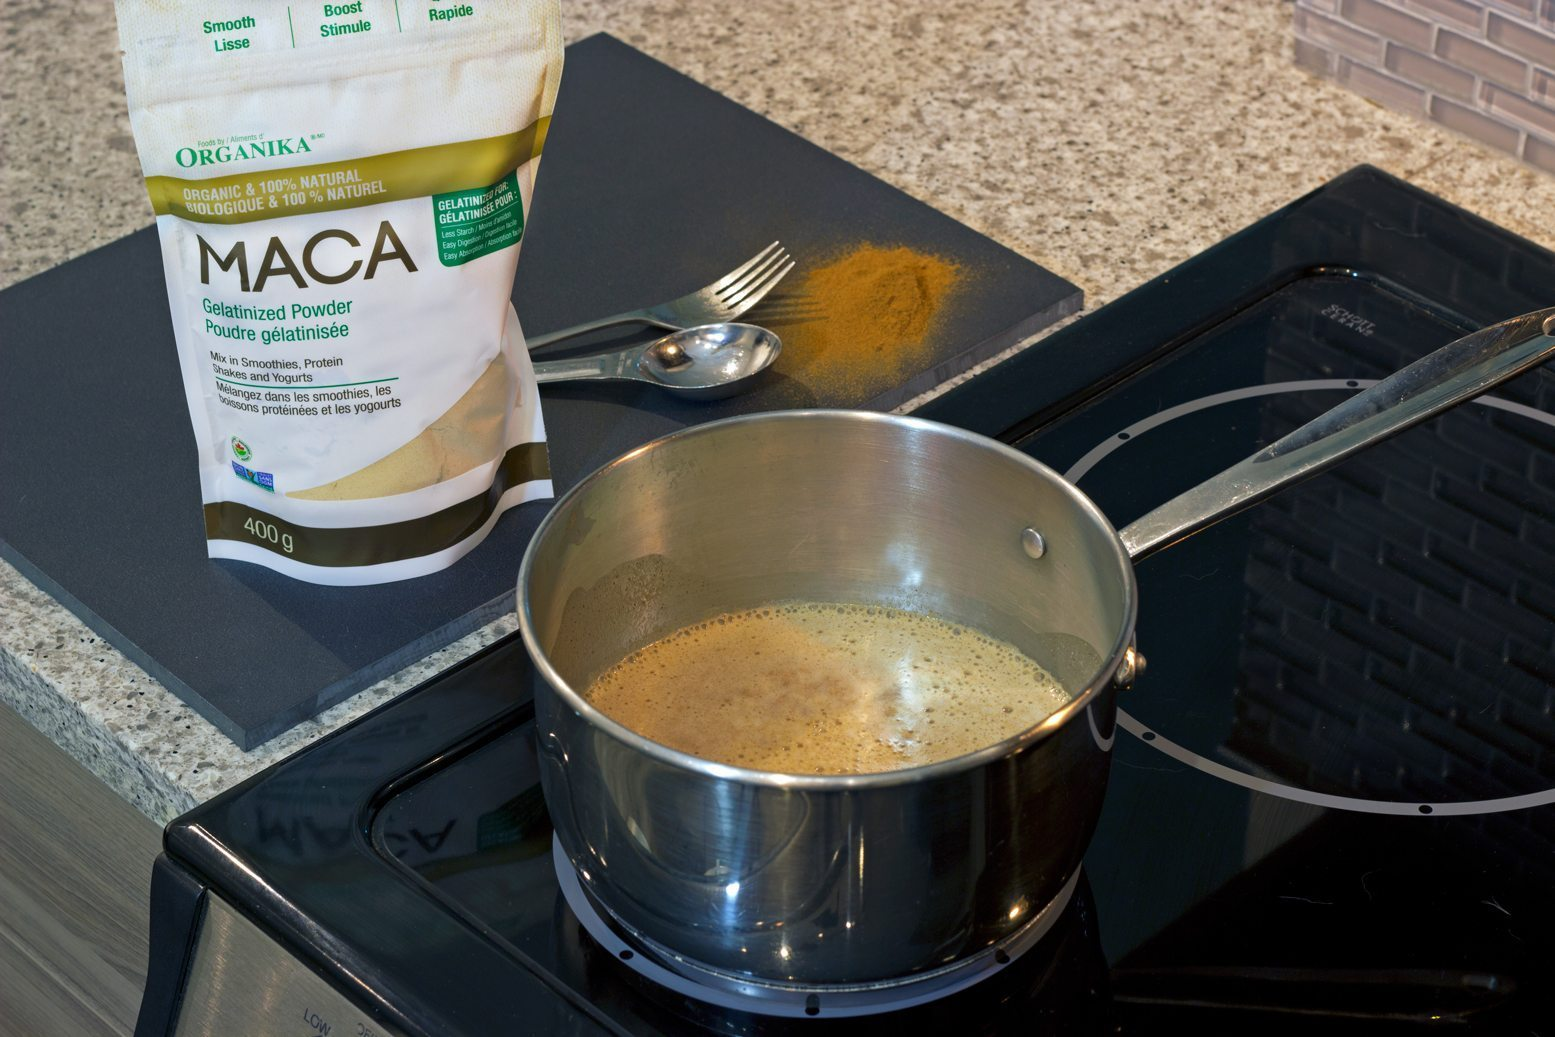 maca powder latte cooking on the stove